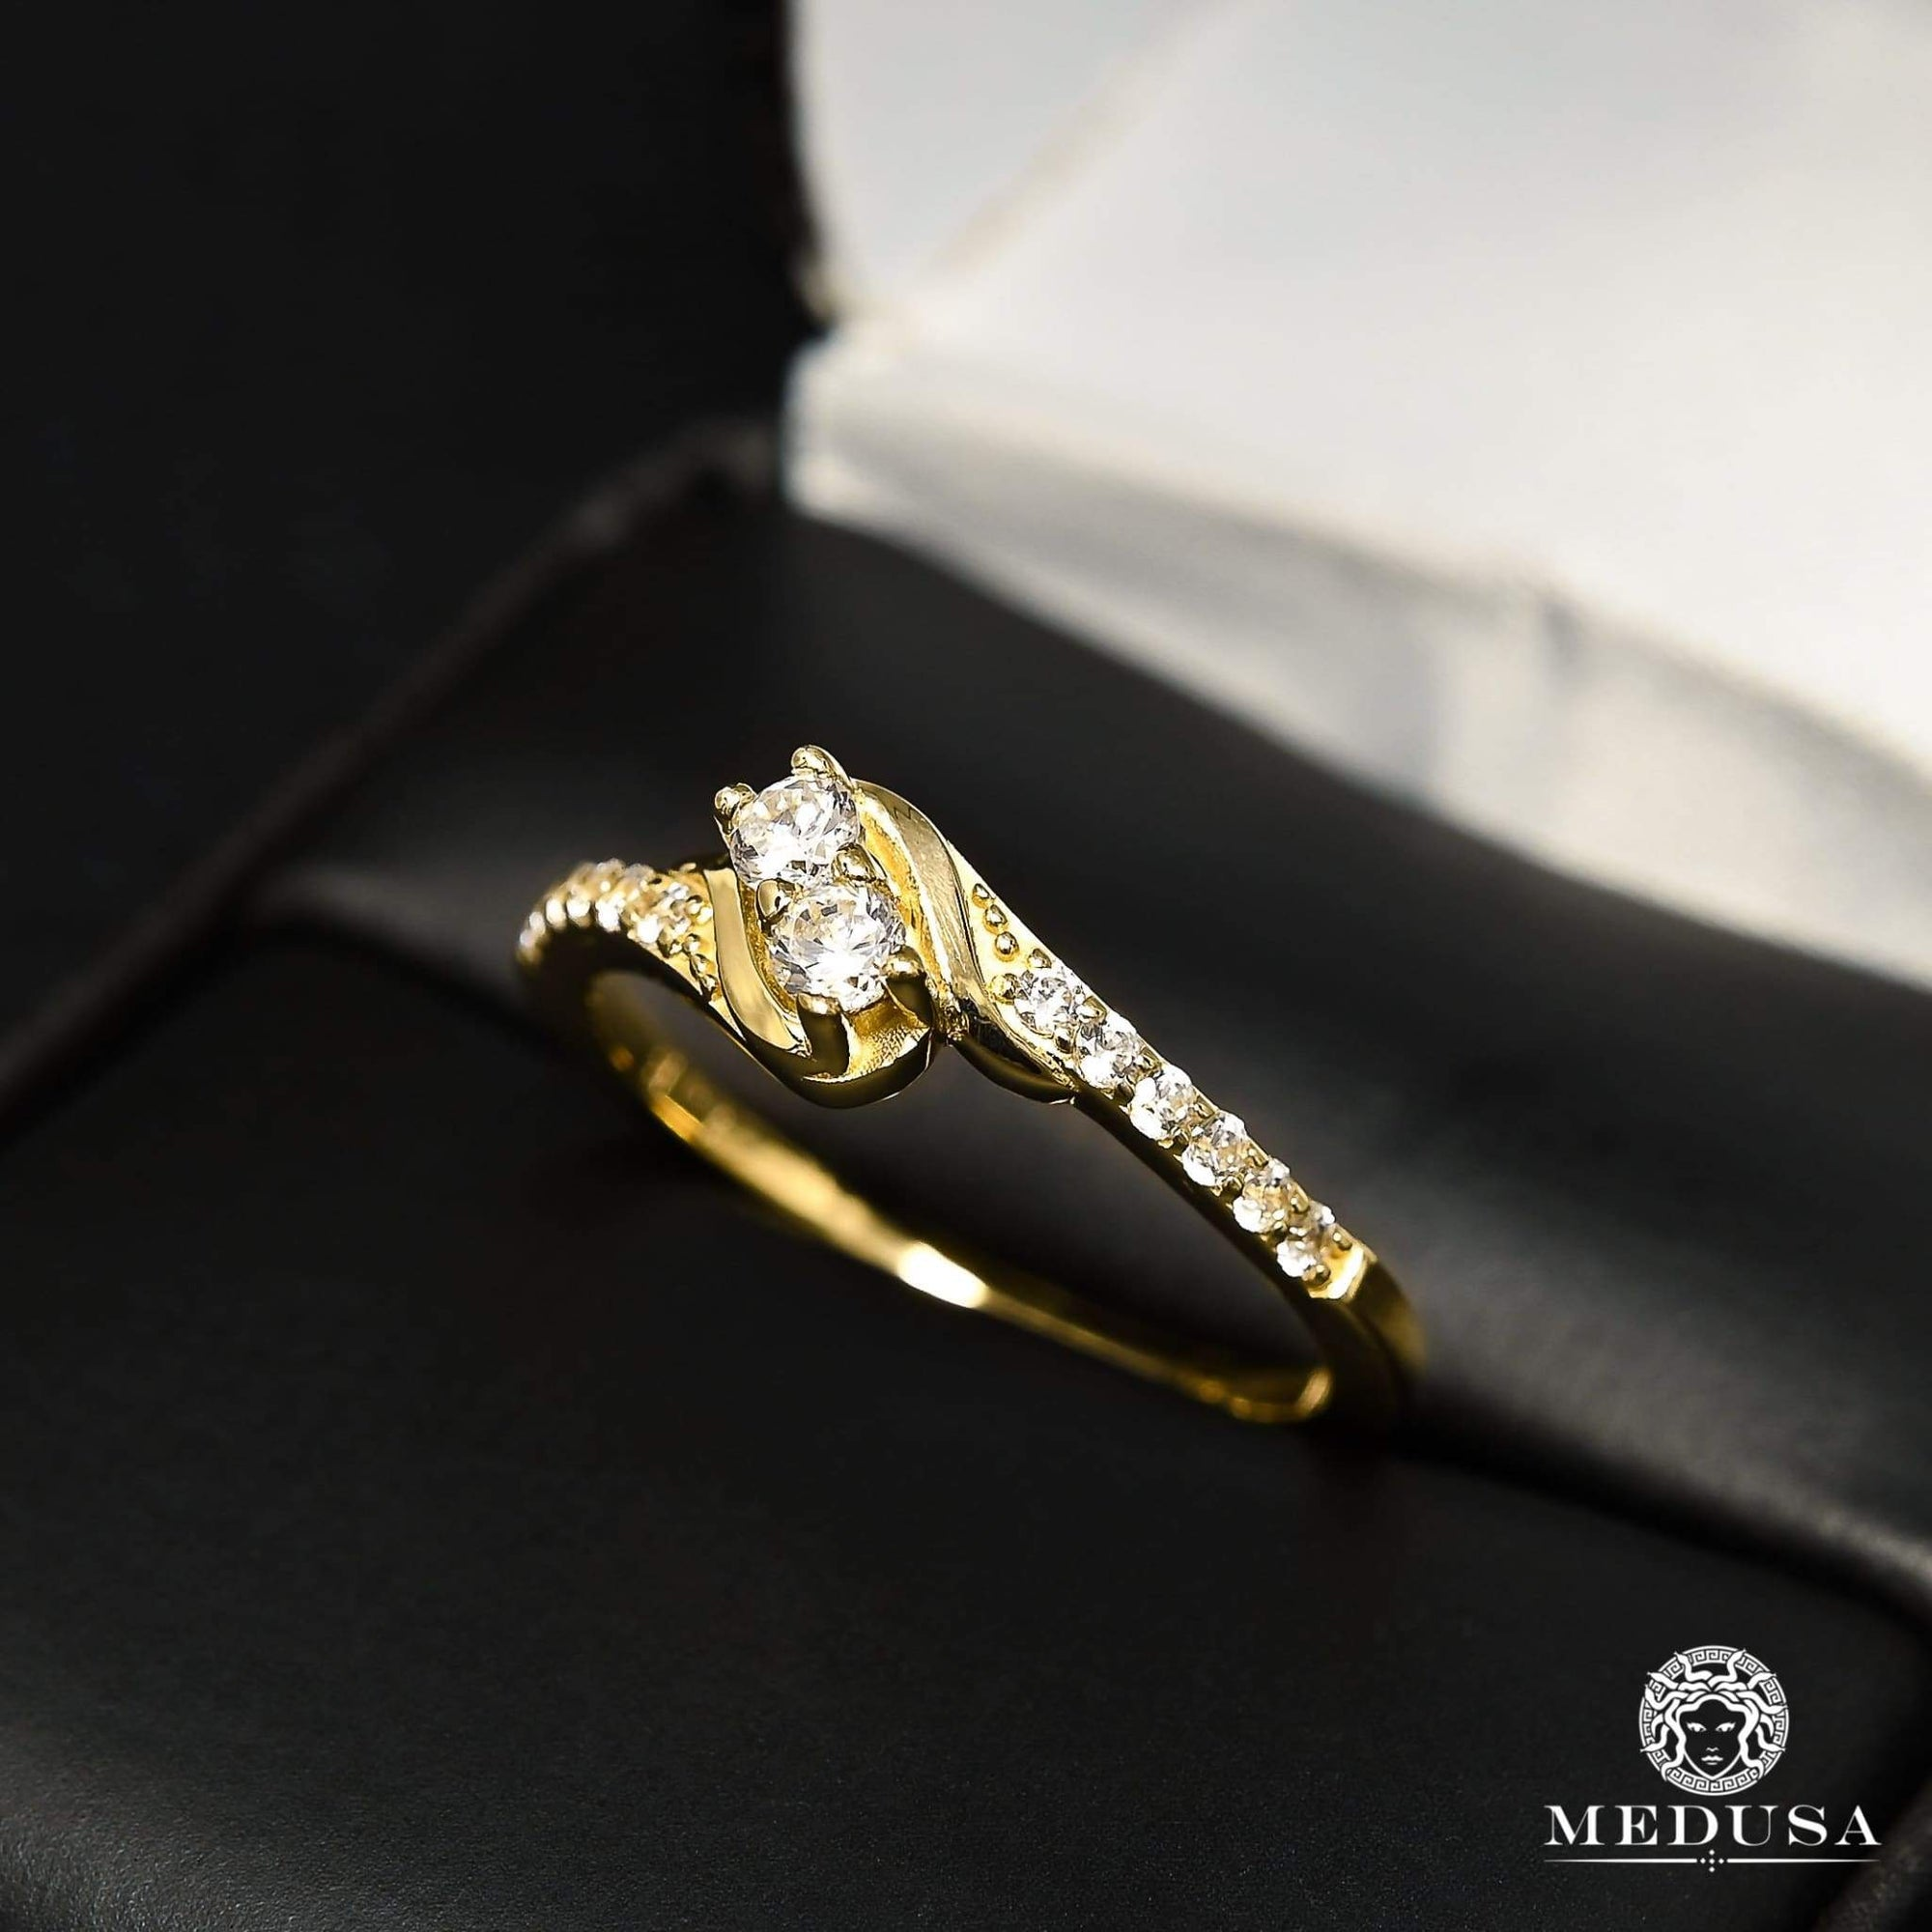 Bague à Diamants en Or 14K | Bague Fiançaille Solitaire F32 - MA0845 Or Jaune